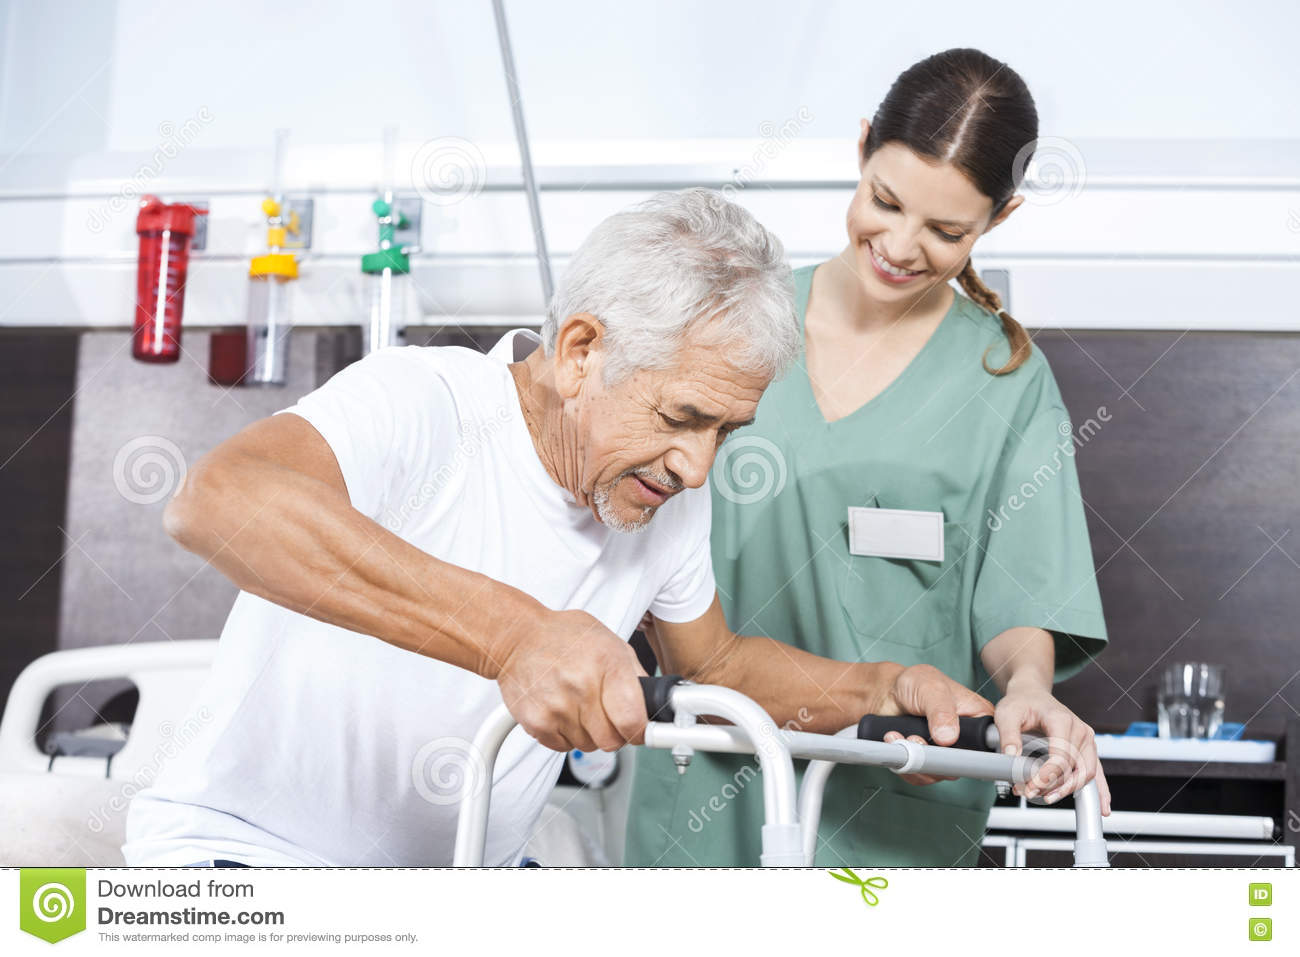 on being a senior Services for seniors - (text format) laws and programs for senior adults the state of michigan further supplements federal funding of numerous services to aid in the health and well-being of senior citizens these services include congregate meals, home-delivered meals.